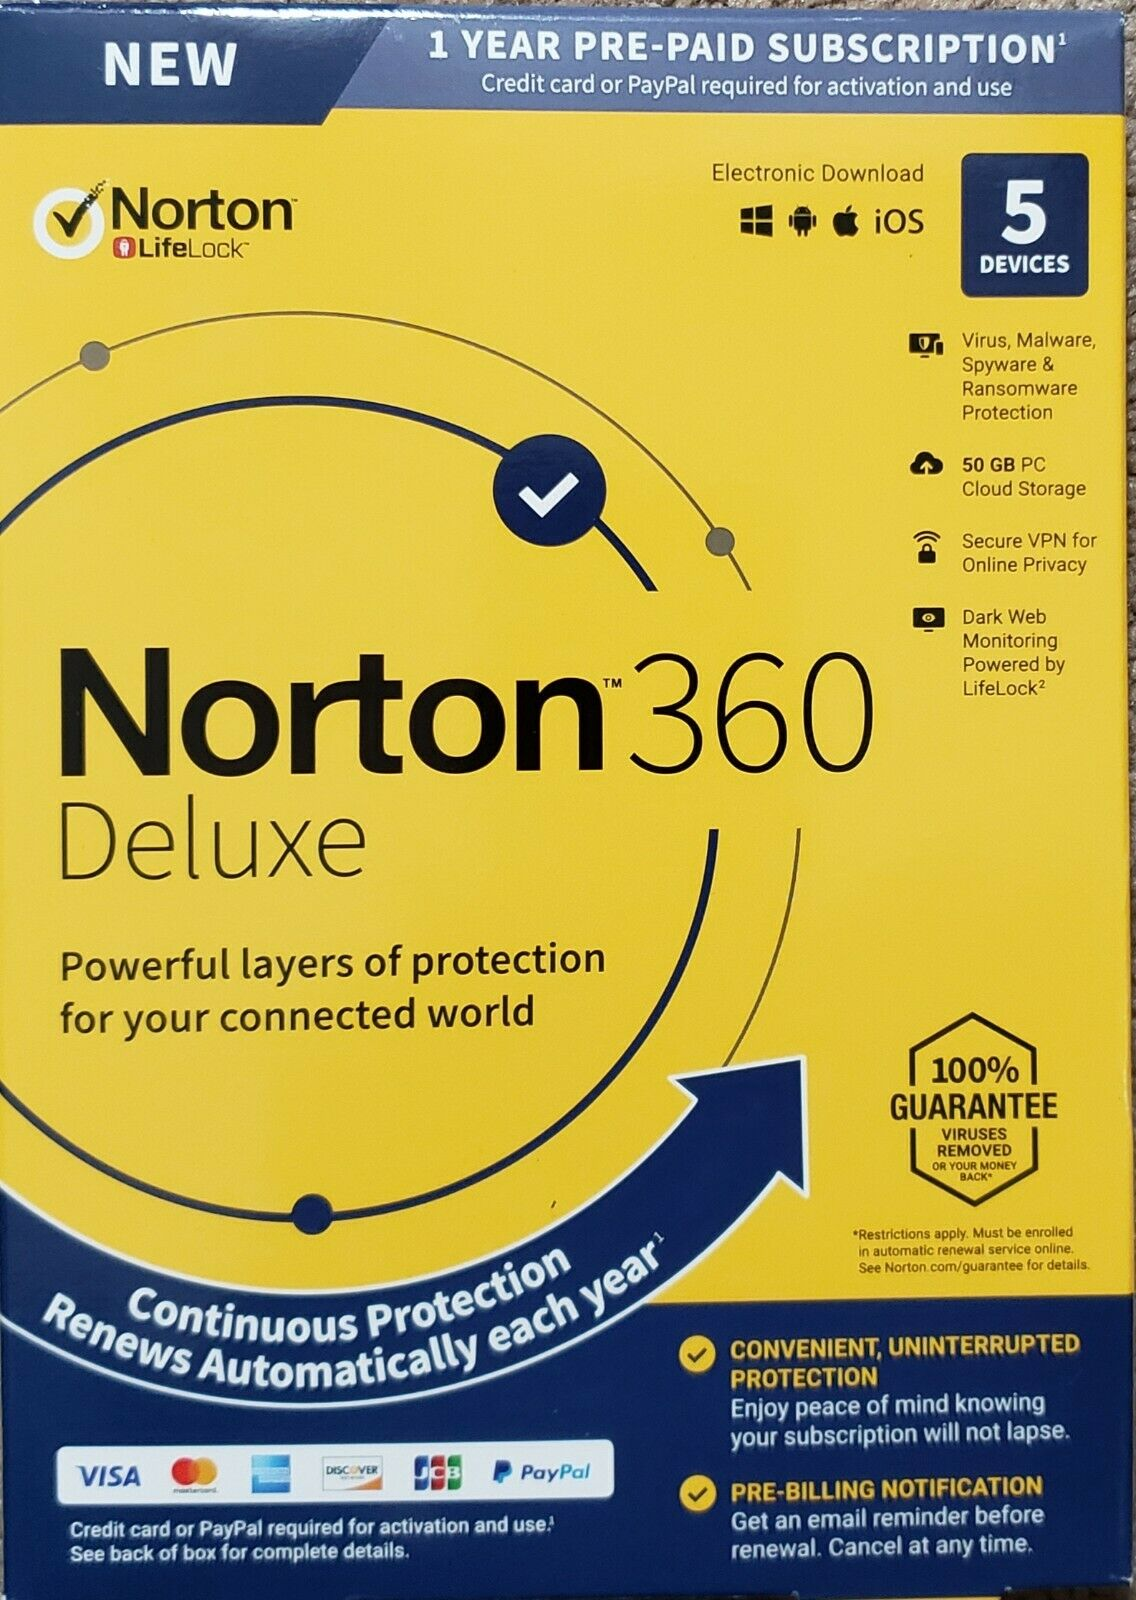 Norton 360 Deluxe 5 Devices VPN 50GB Secure PC Cloud Backup Keycard New!